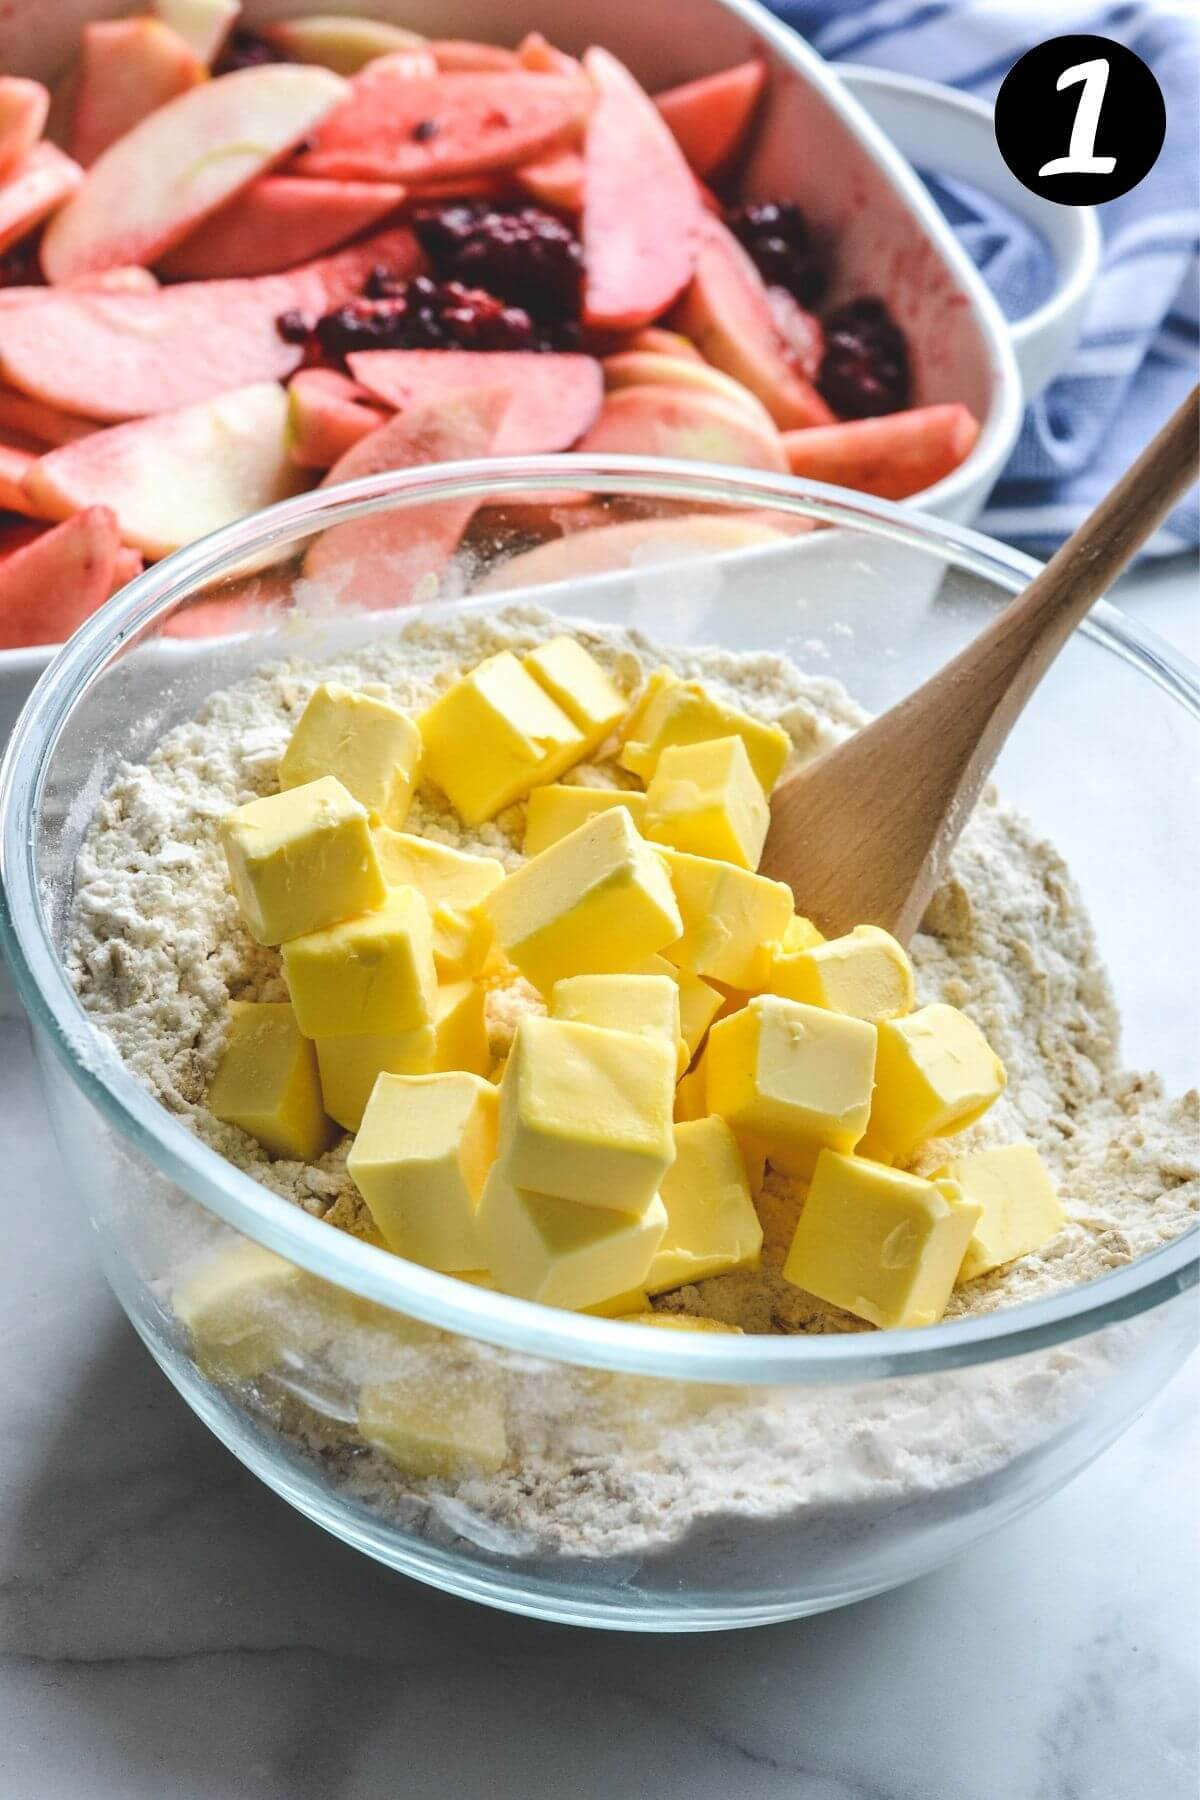 a glass bowl containing crumble ingredients and cubed butter with a wooden spoon